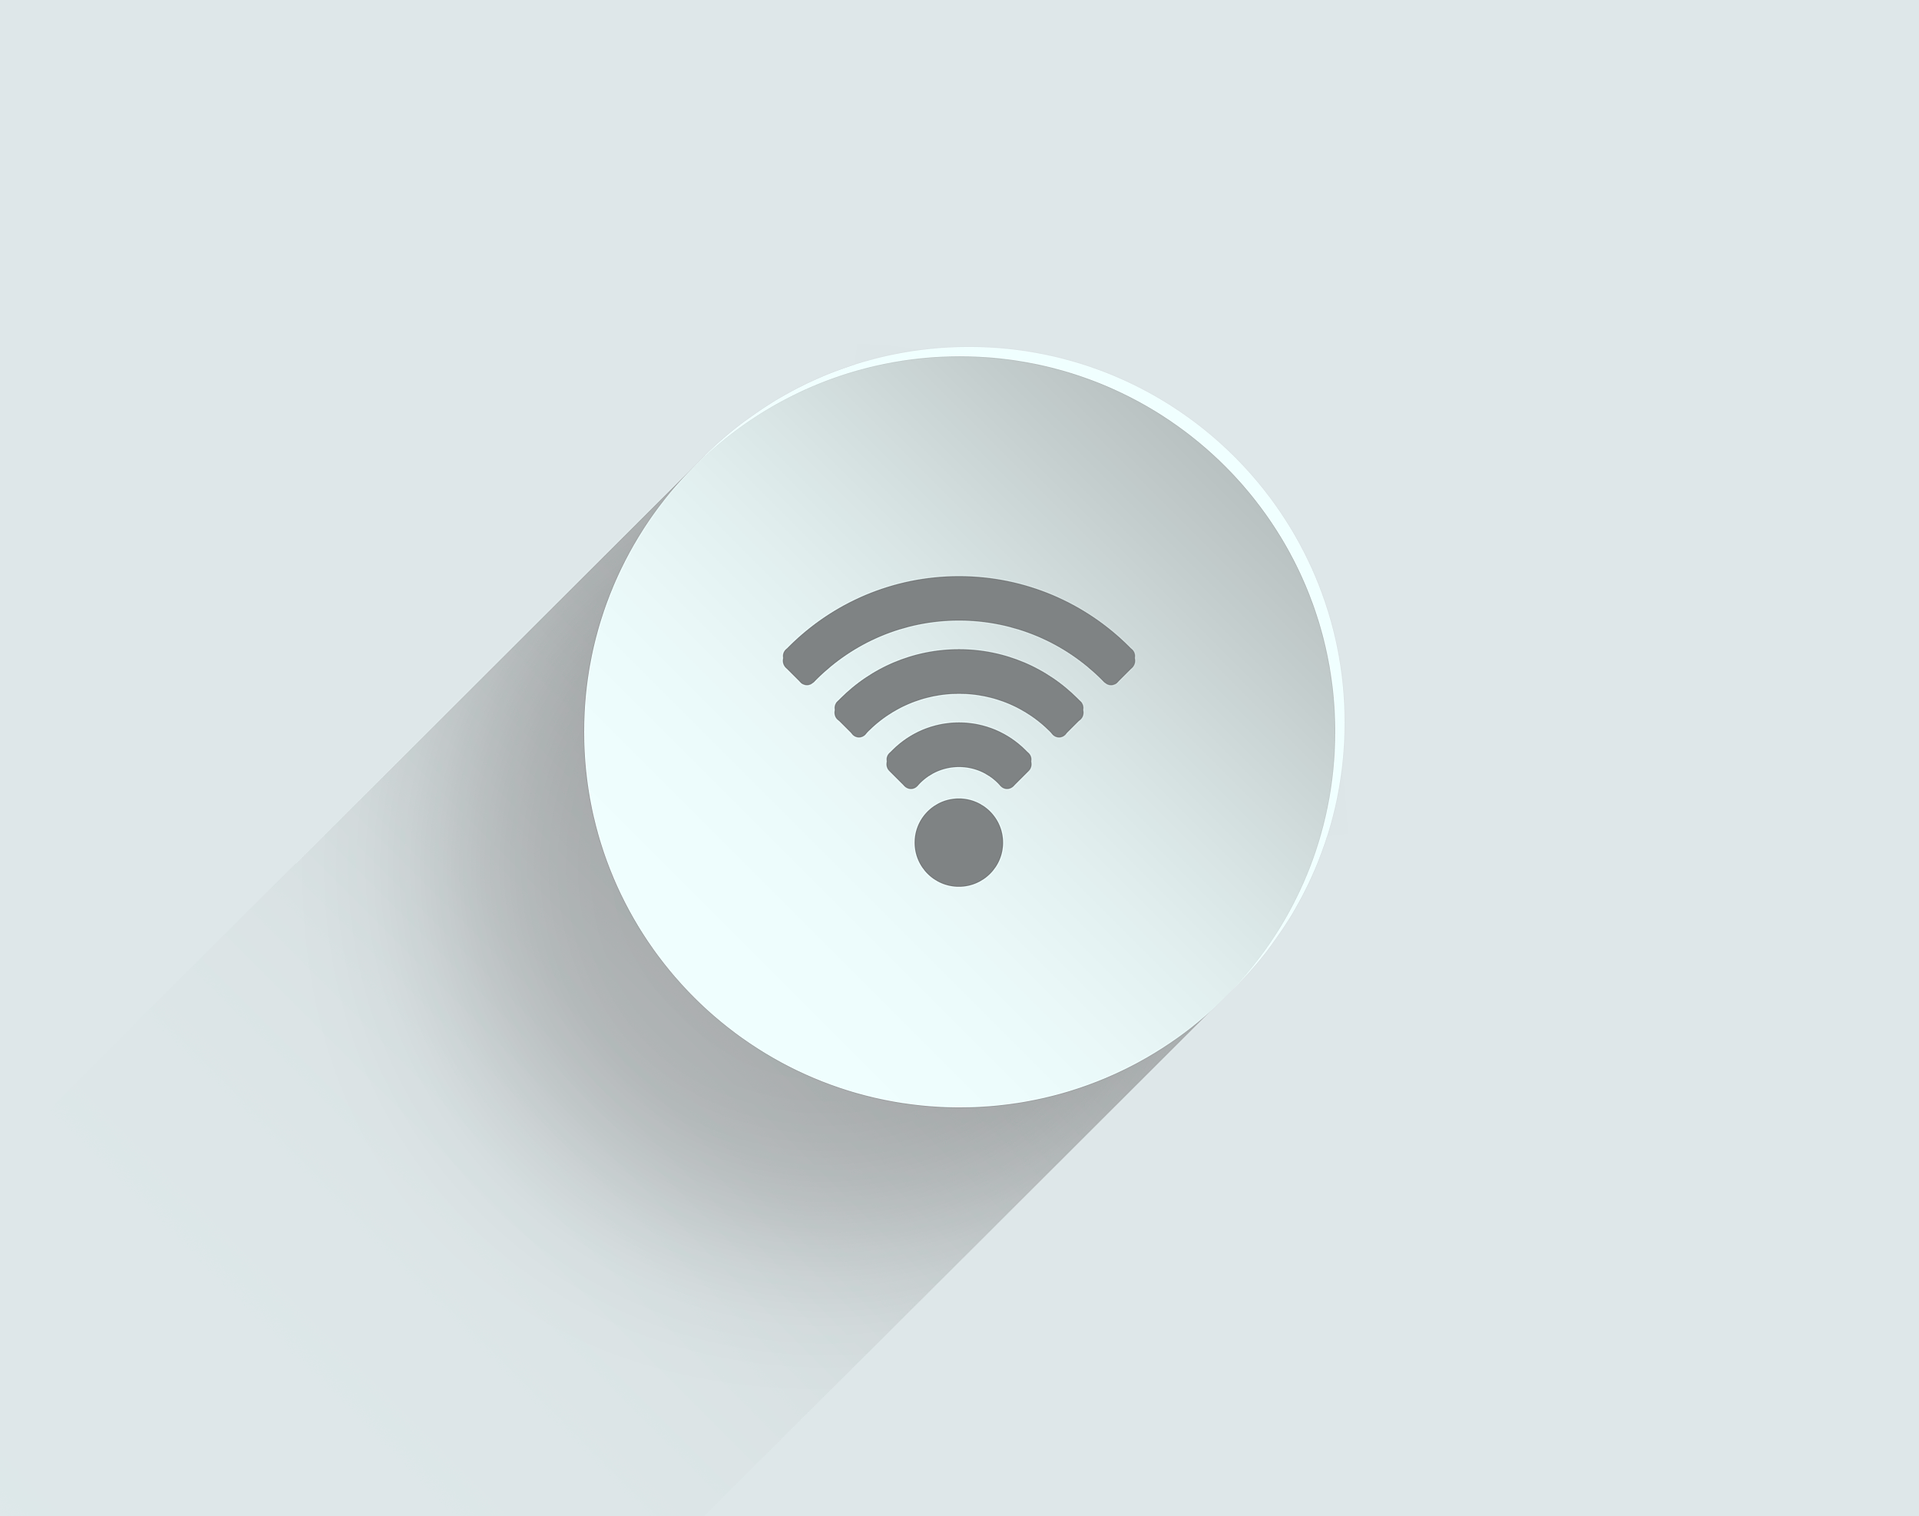 grey-wifi-icon-on-white-background